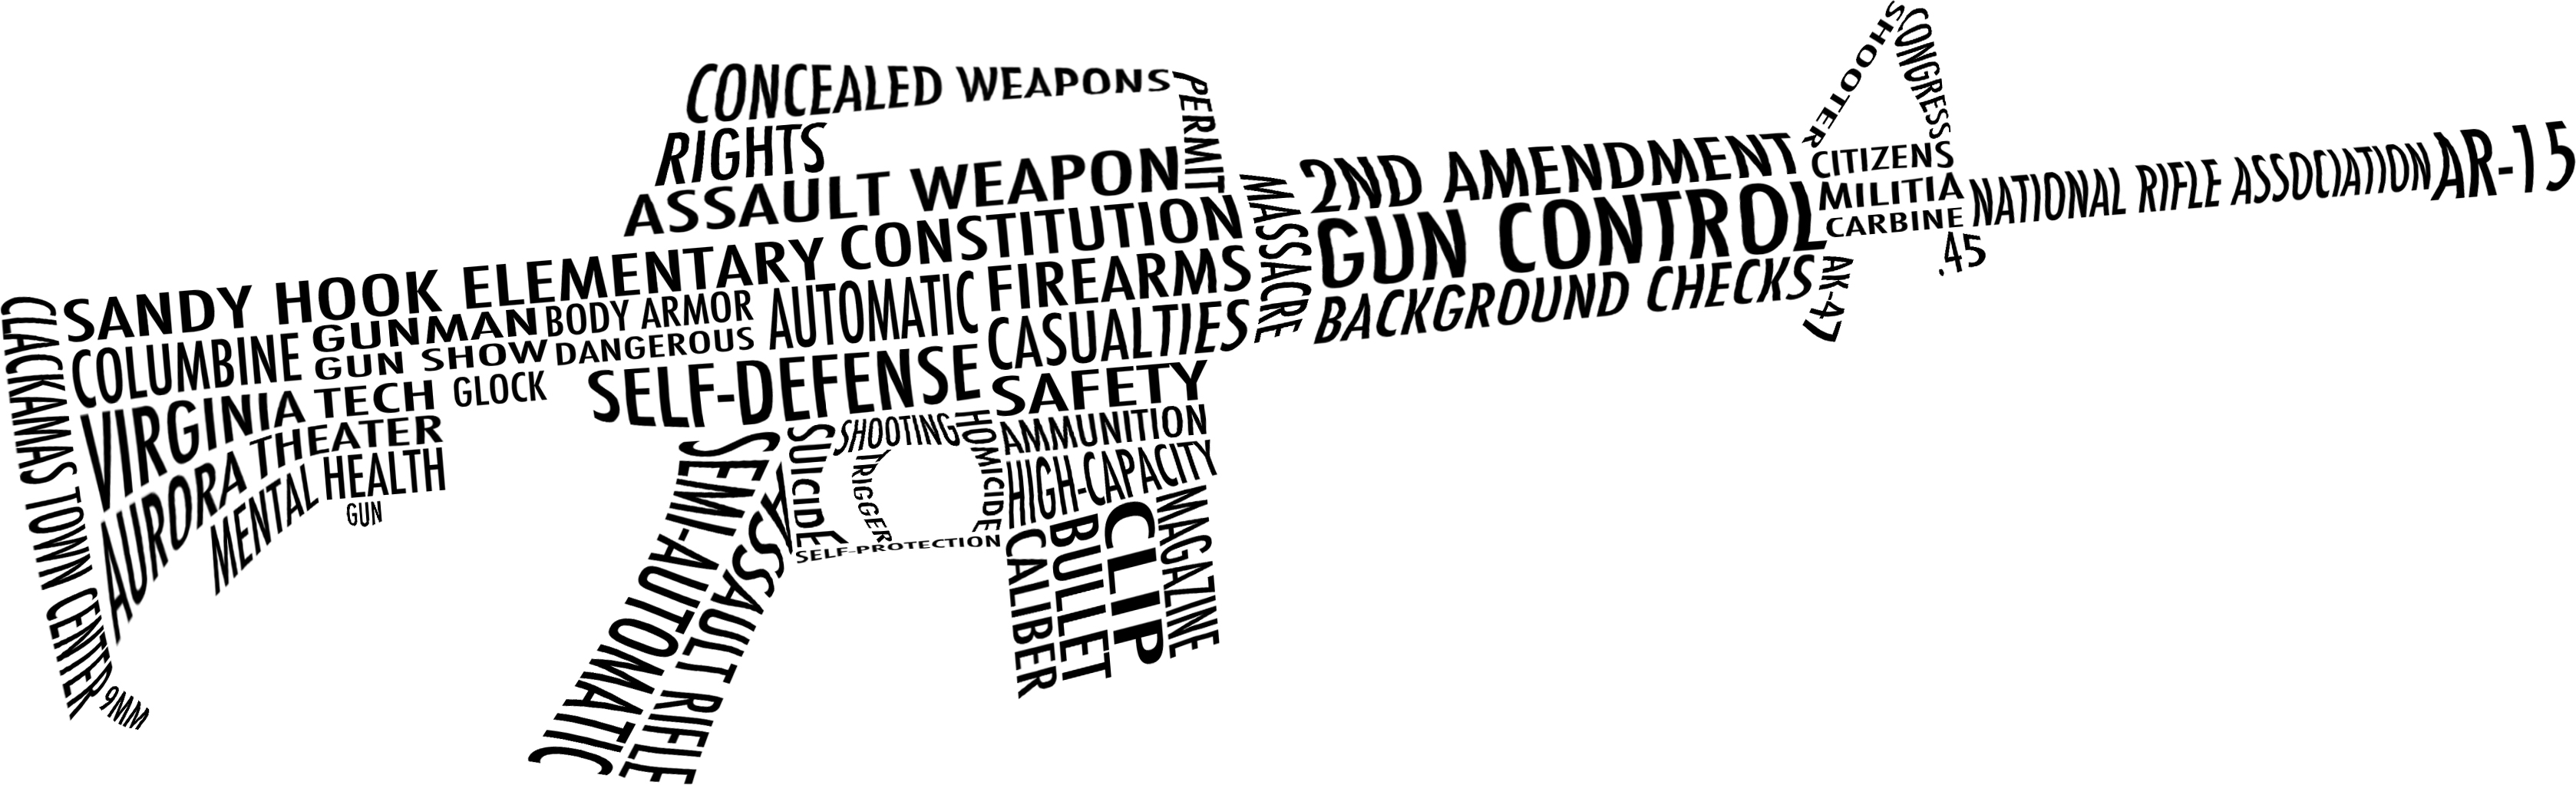 an analysis of guns in todays society Home publications insights on law and society 15 fall 2013 guns in america political cartoon analysis guns in america political cartoon analysis.